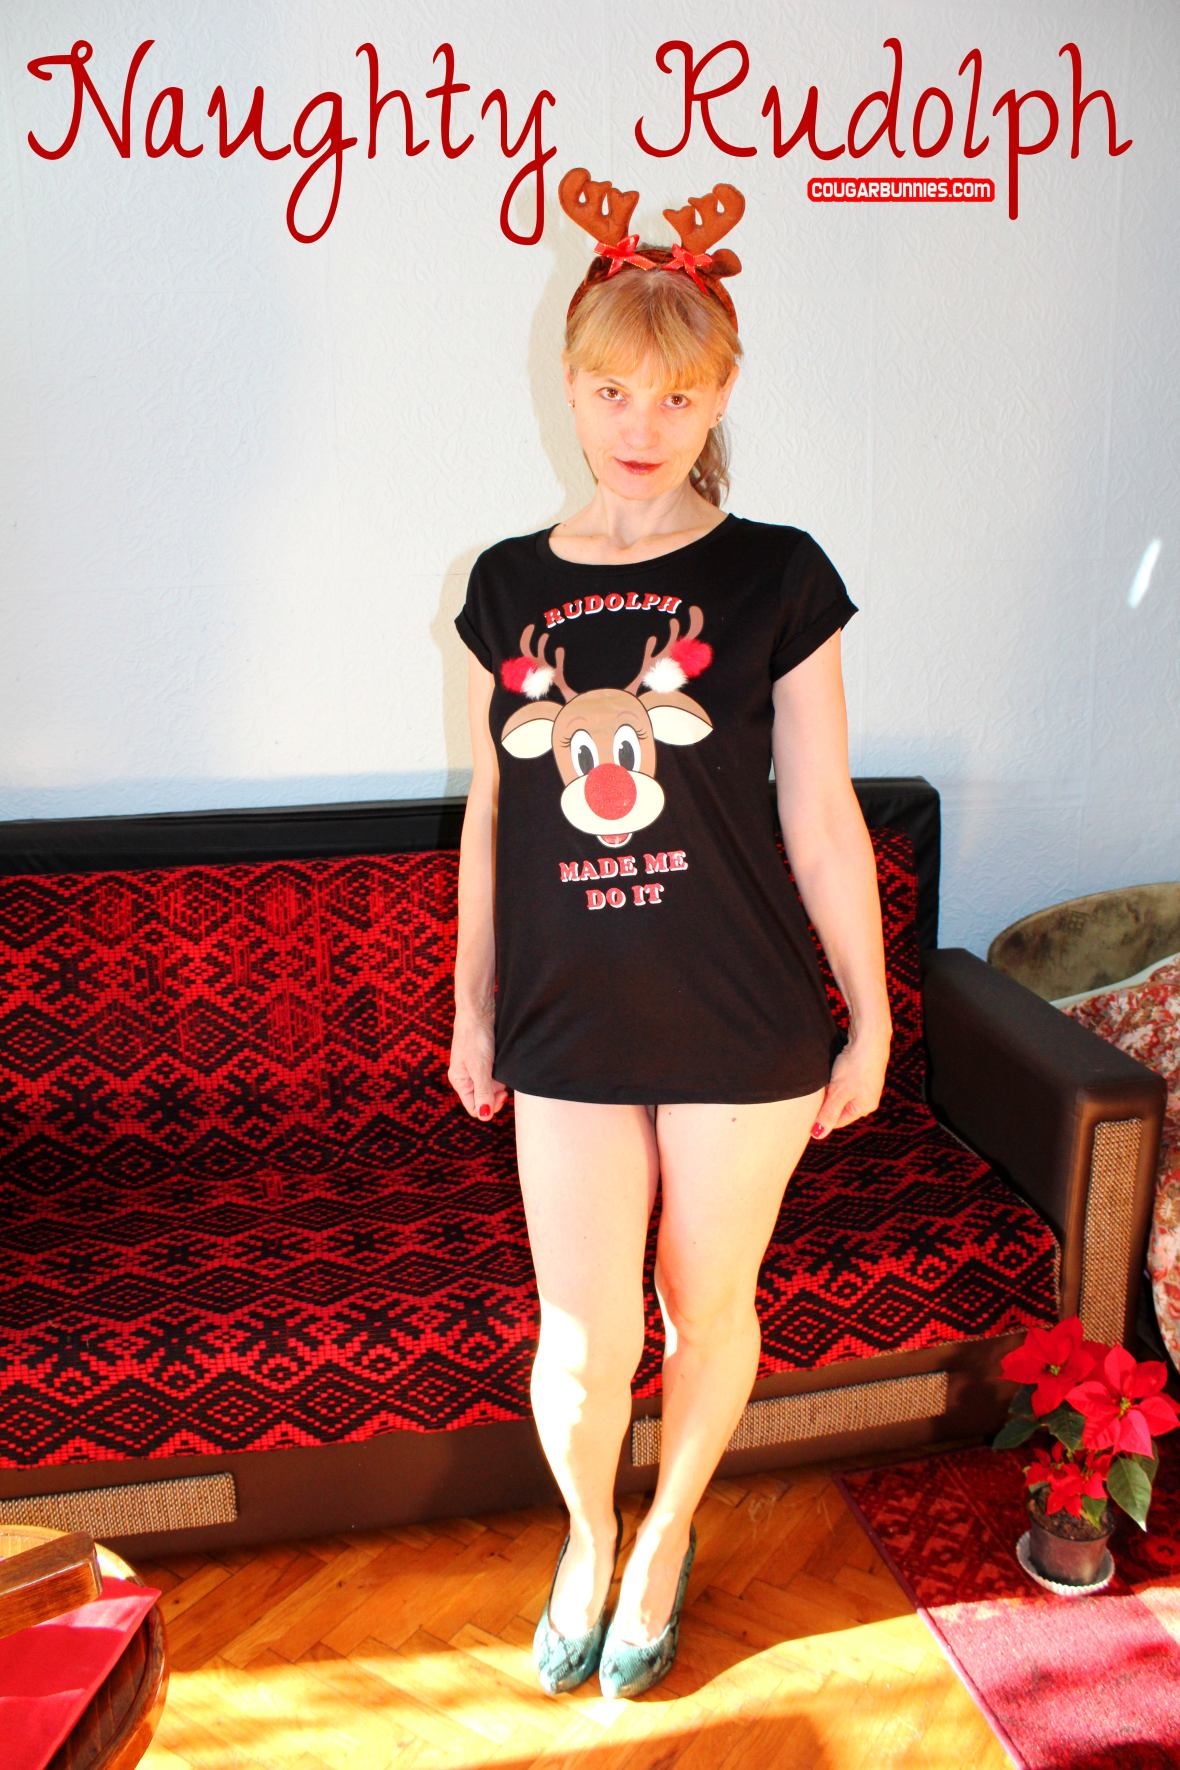 Naughty Rudolph - this month on Southern Charms and CougarBunnies.com